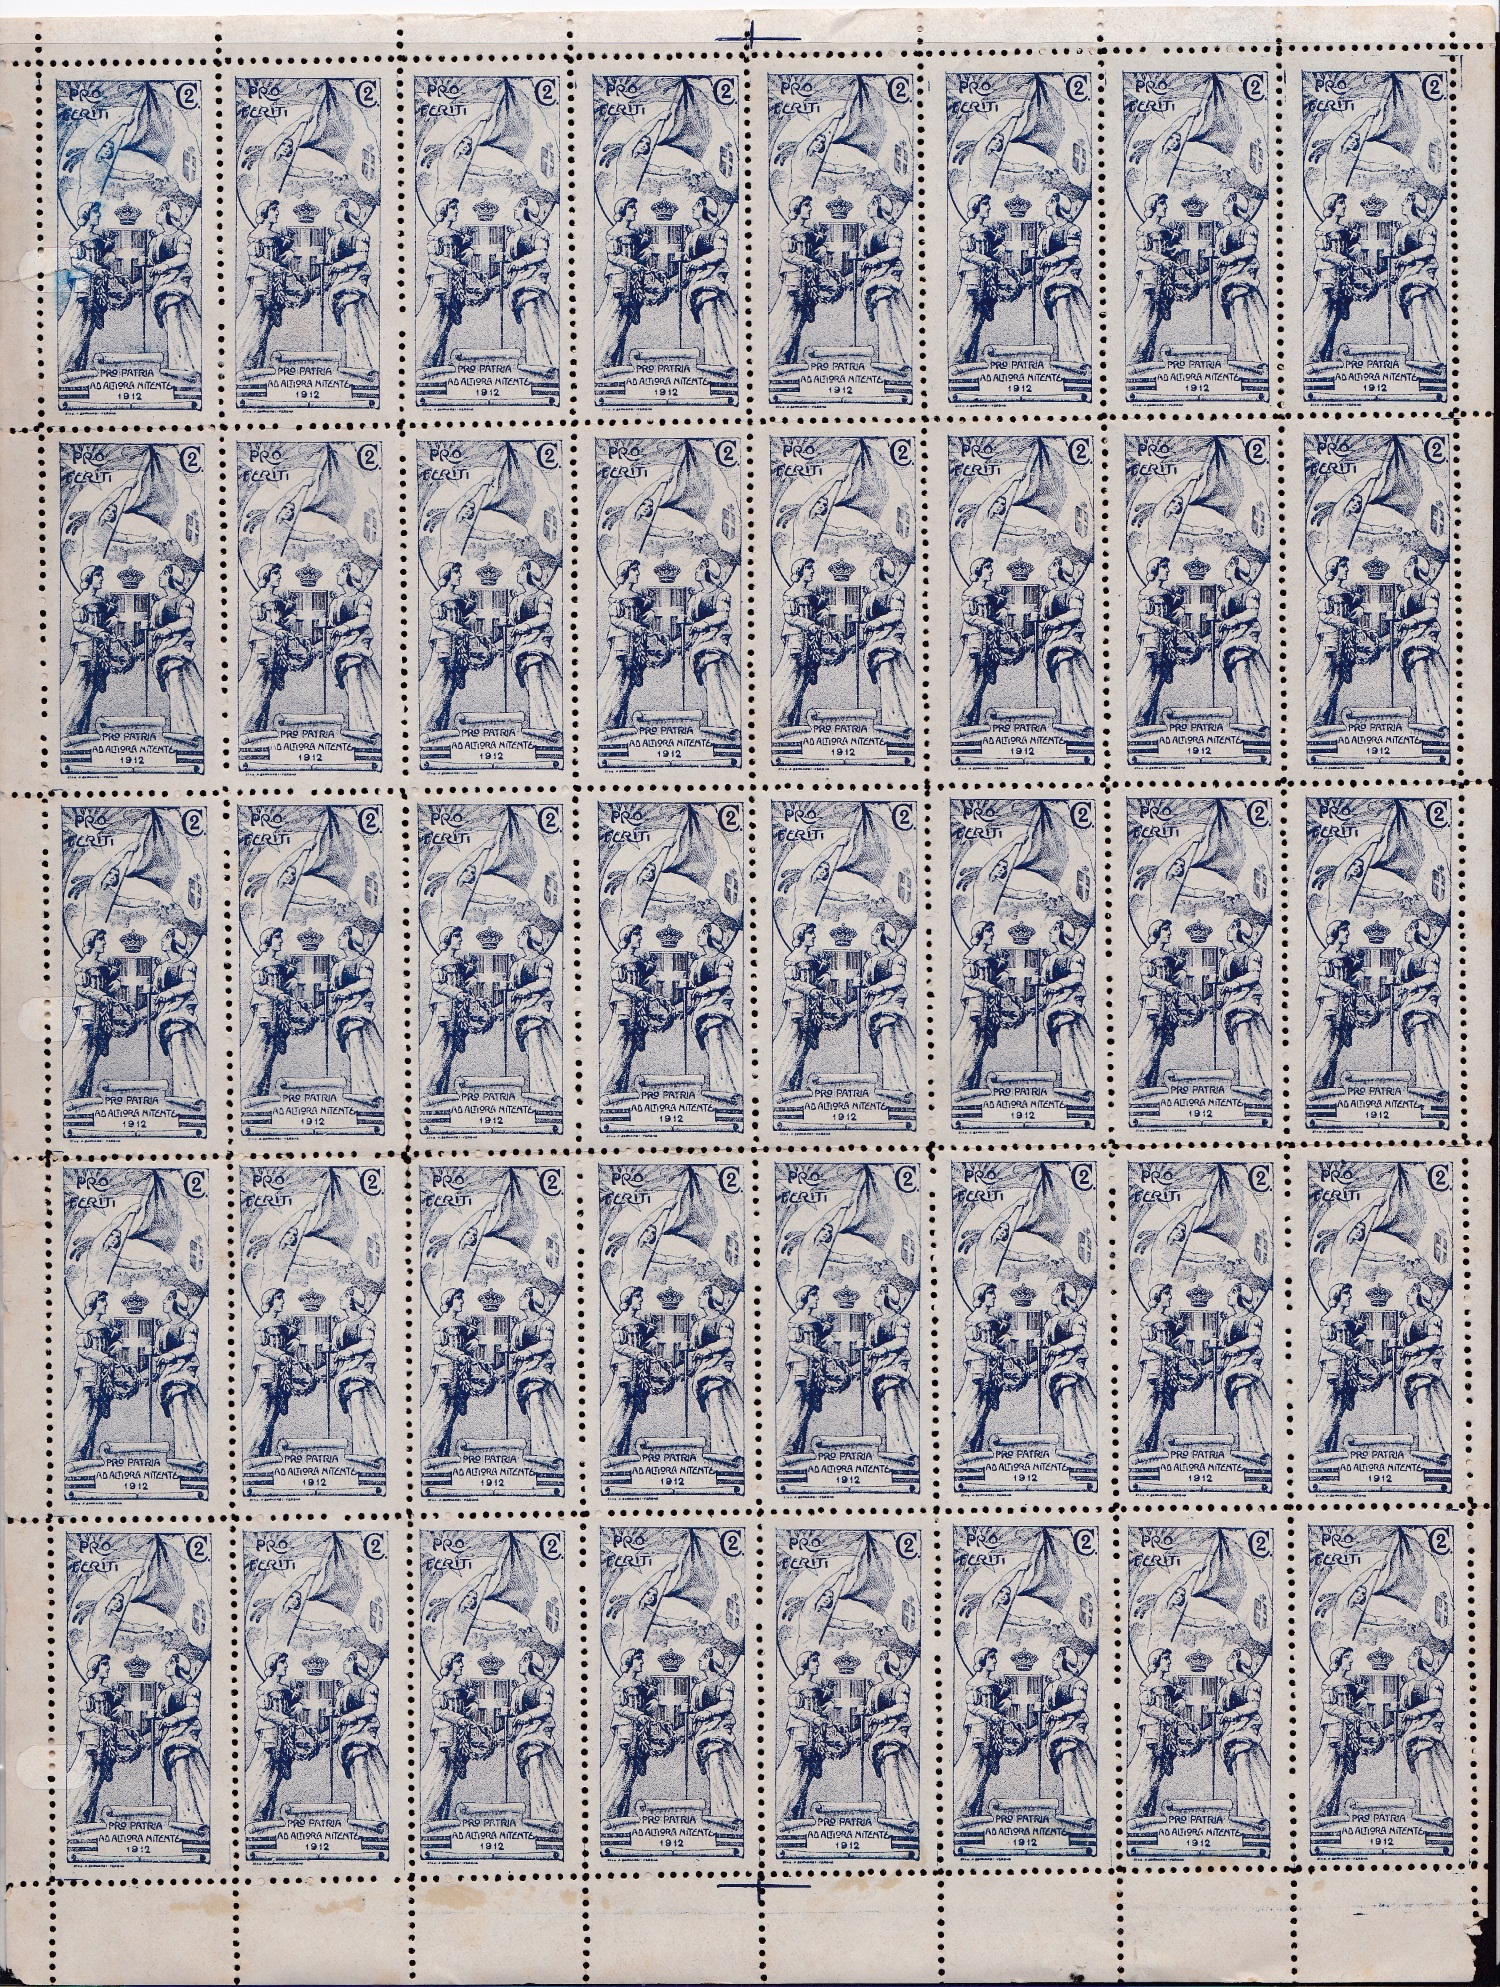 Italy, Early Sheet, Blue